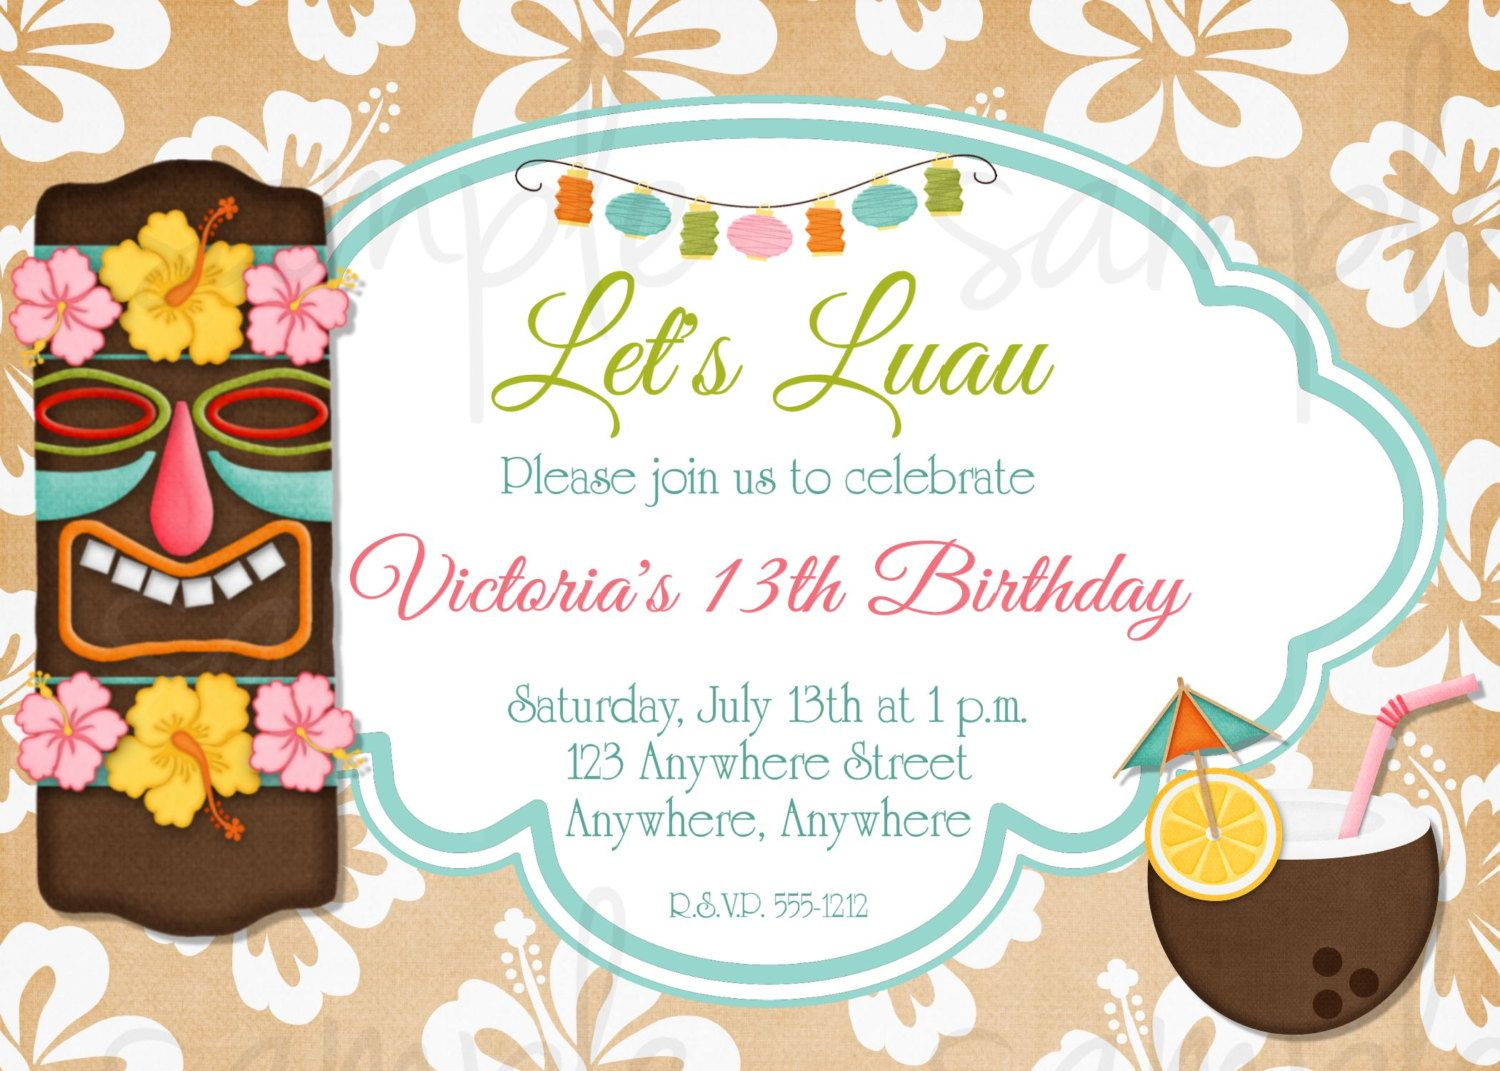 baby luau birthday invitations  new invitations, invitation samples